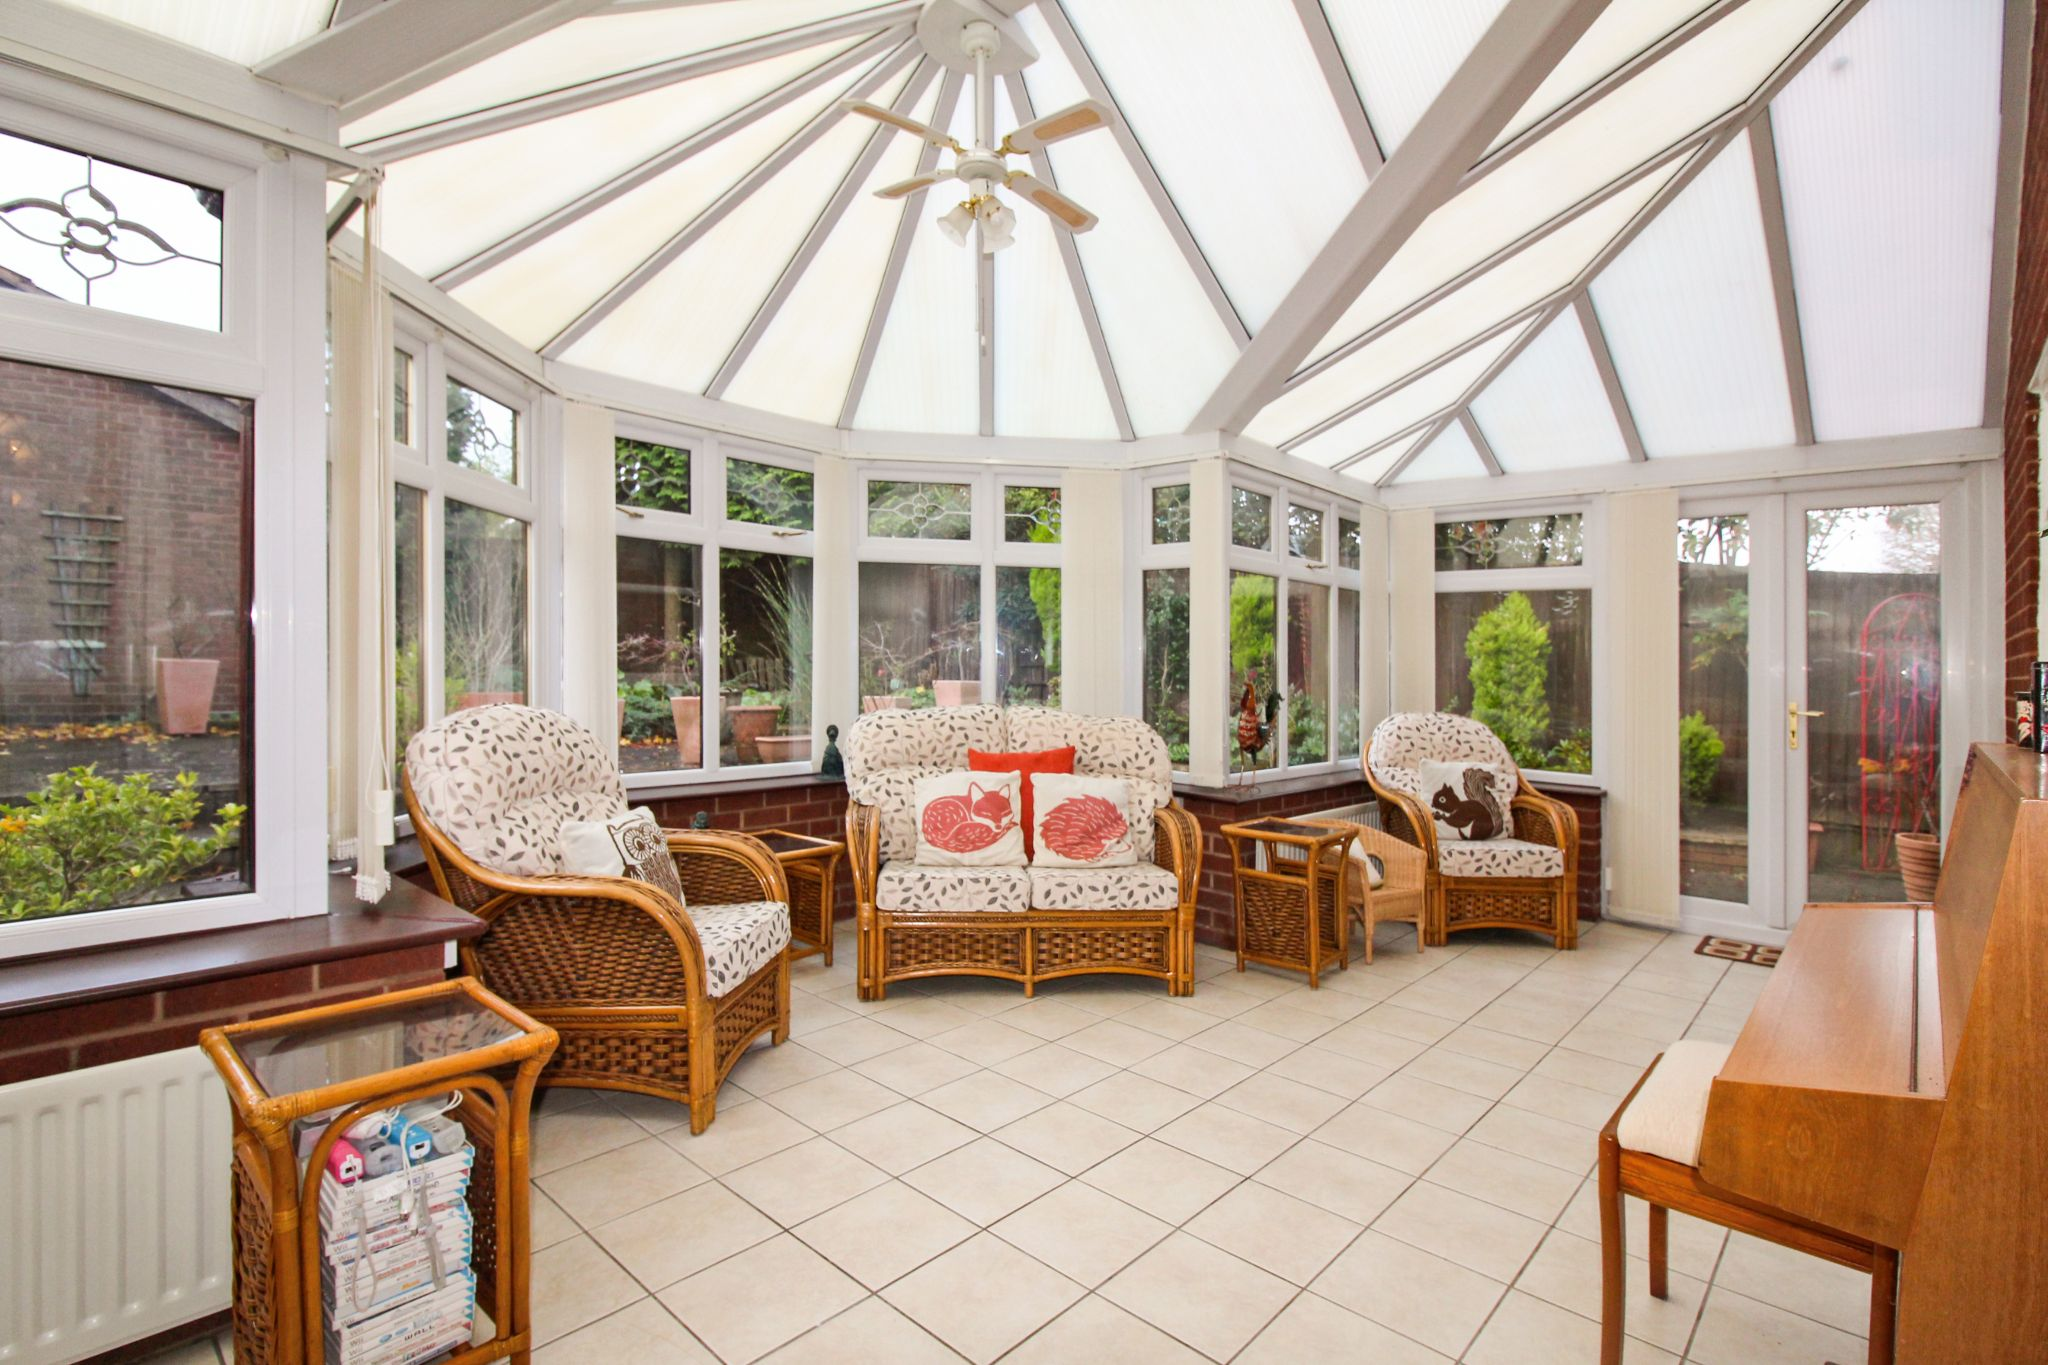 4 bedroom detached house SSTC in Solihull - Photograph 7.